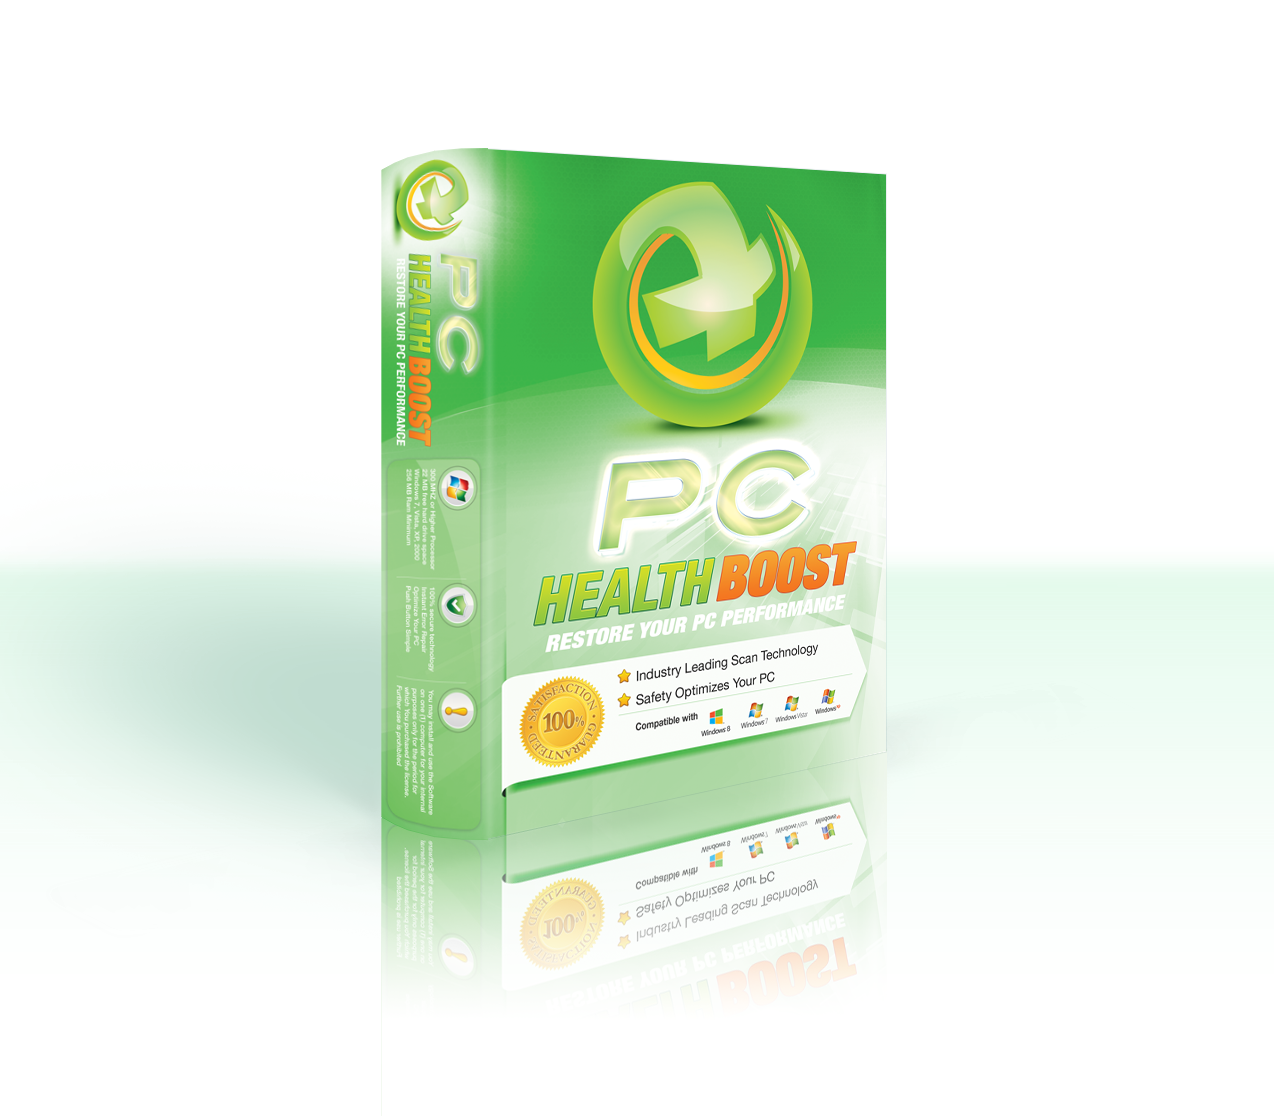 Software Box for BCHealthBoost